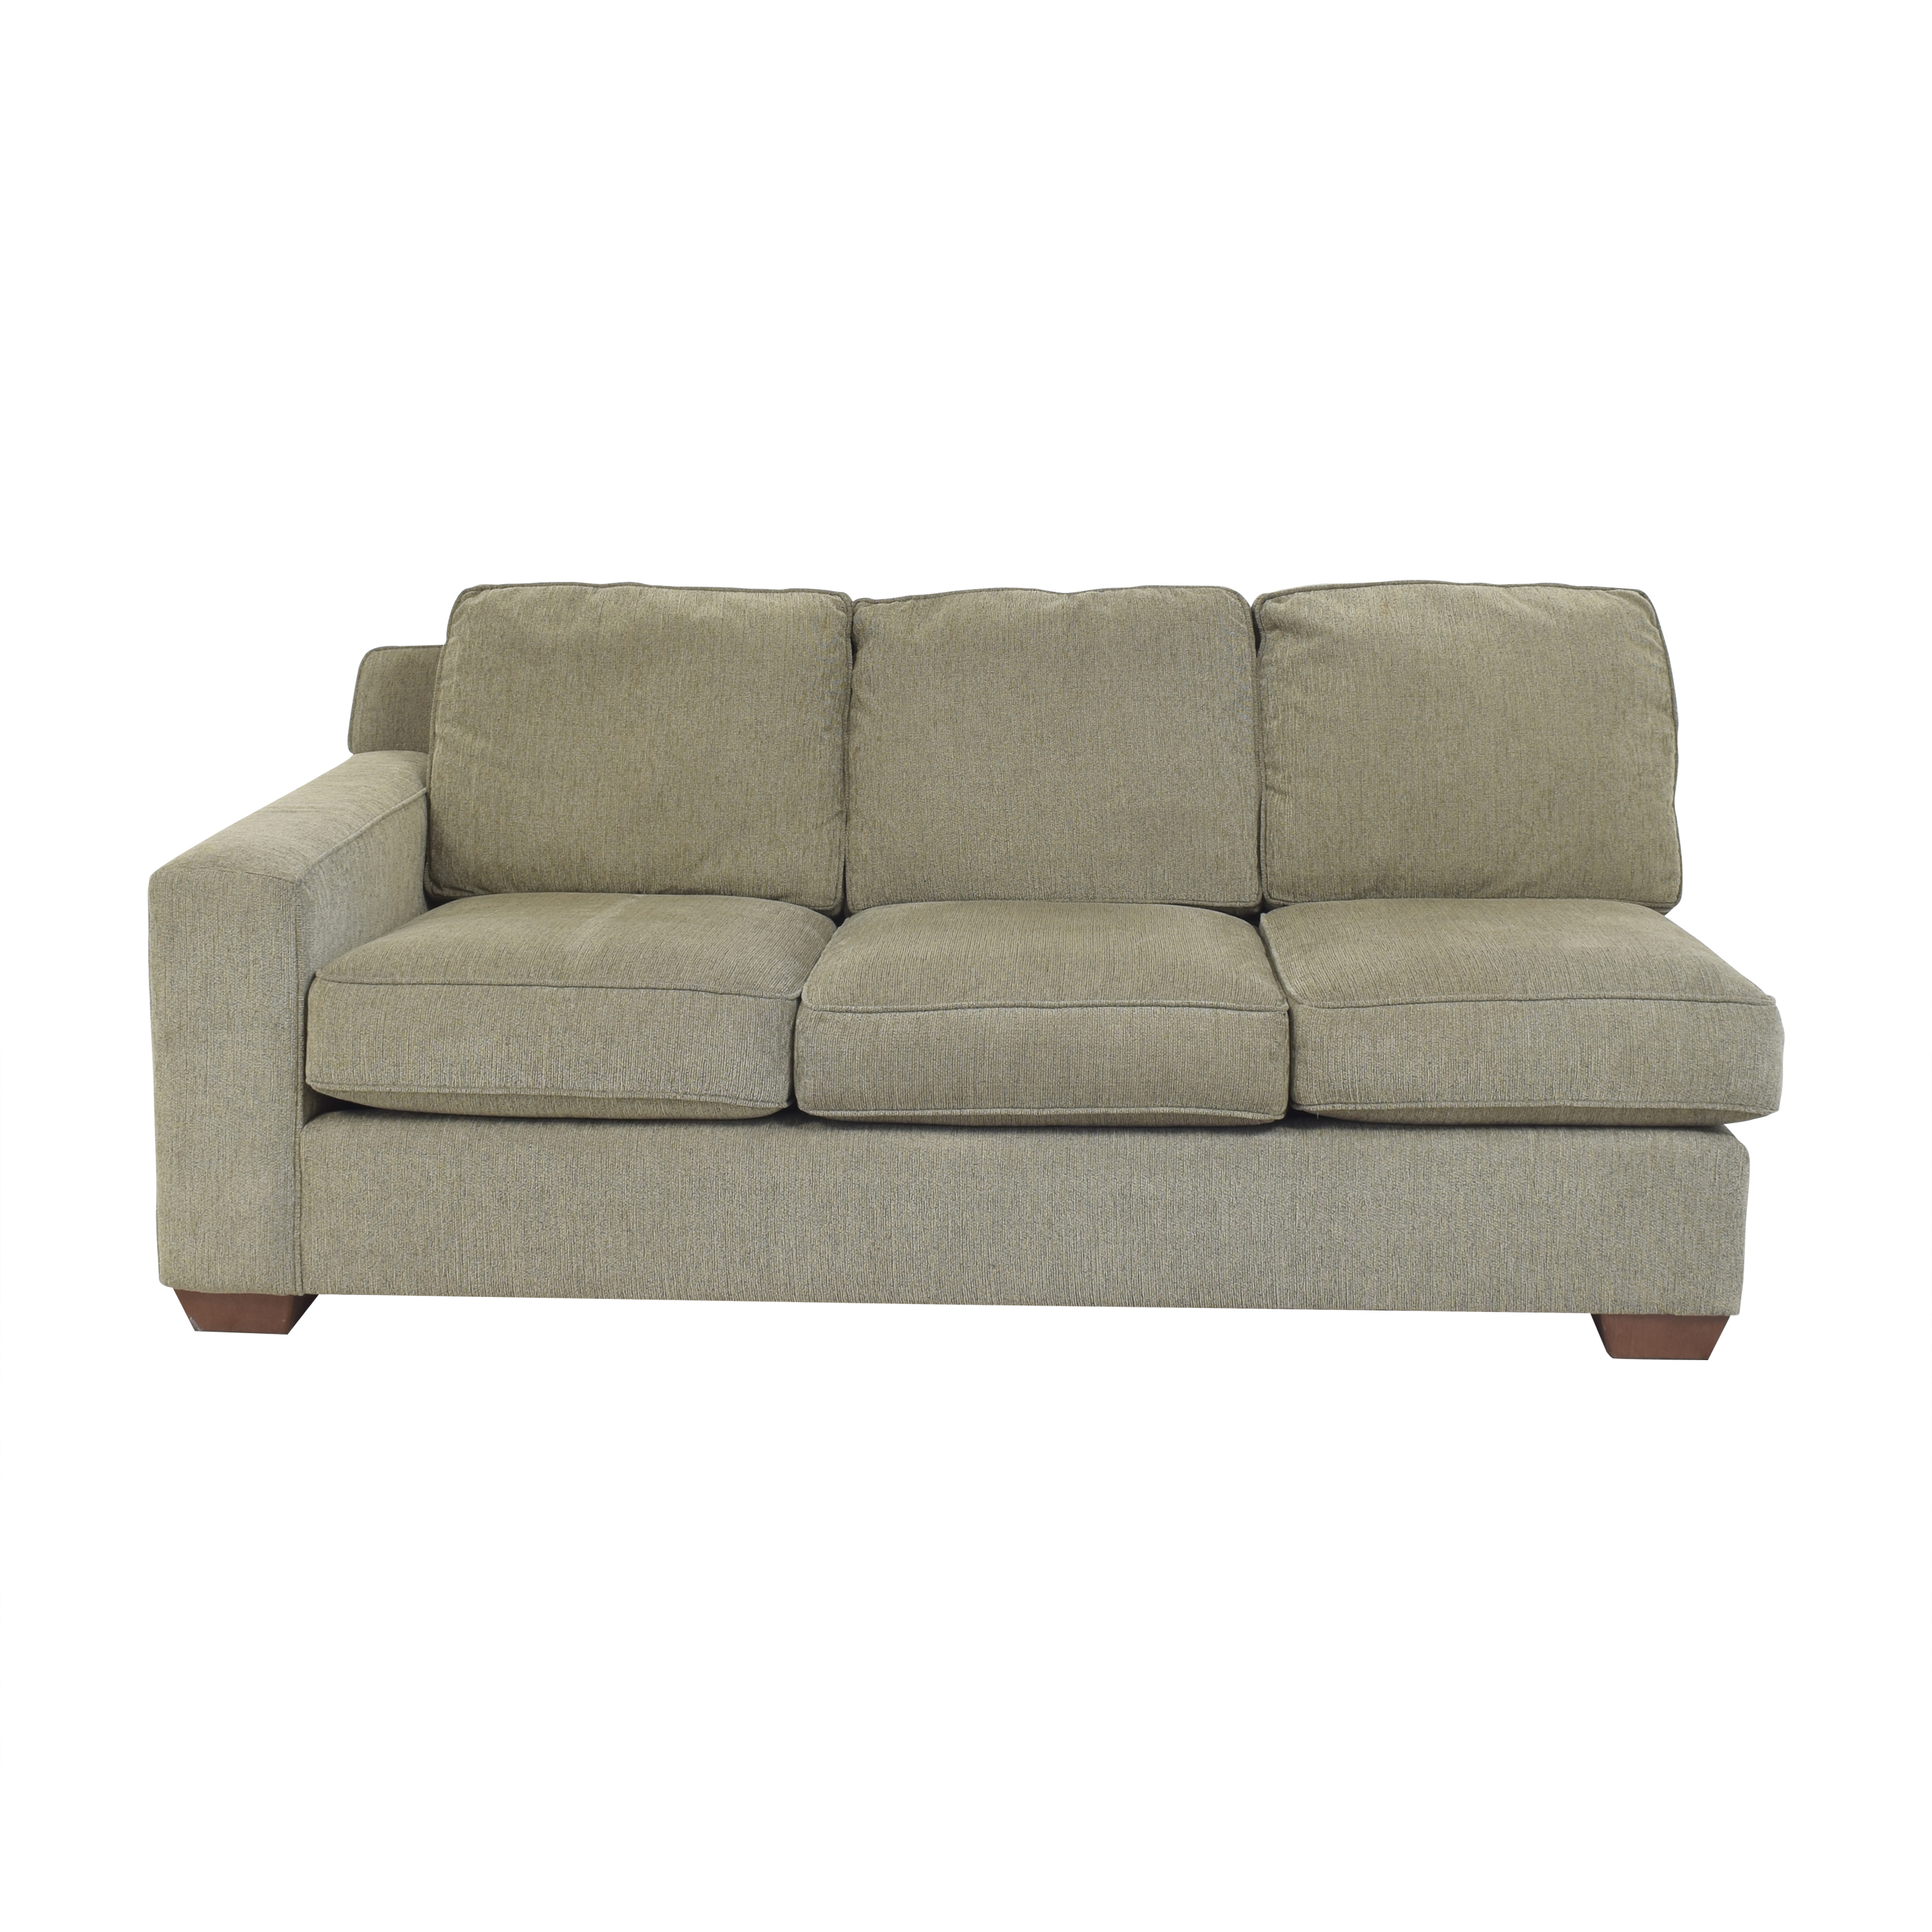 buy Bloomingdale's Bloomingdale's Left Arm Sofa online